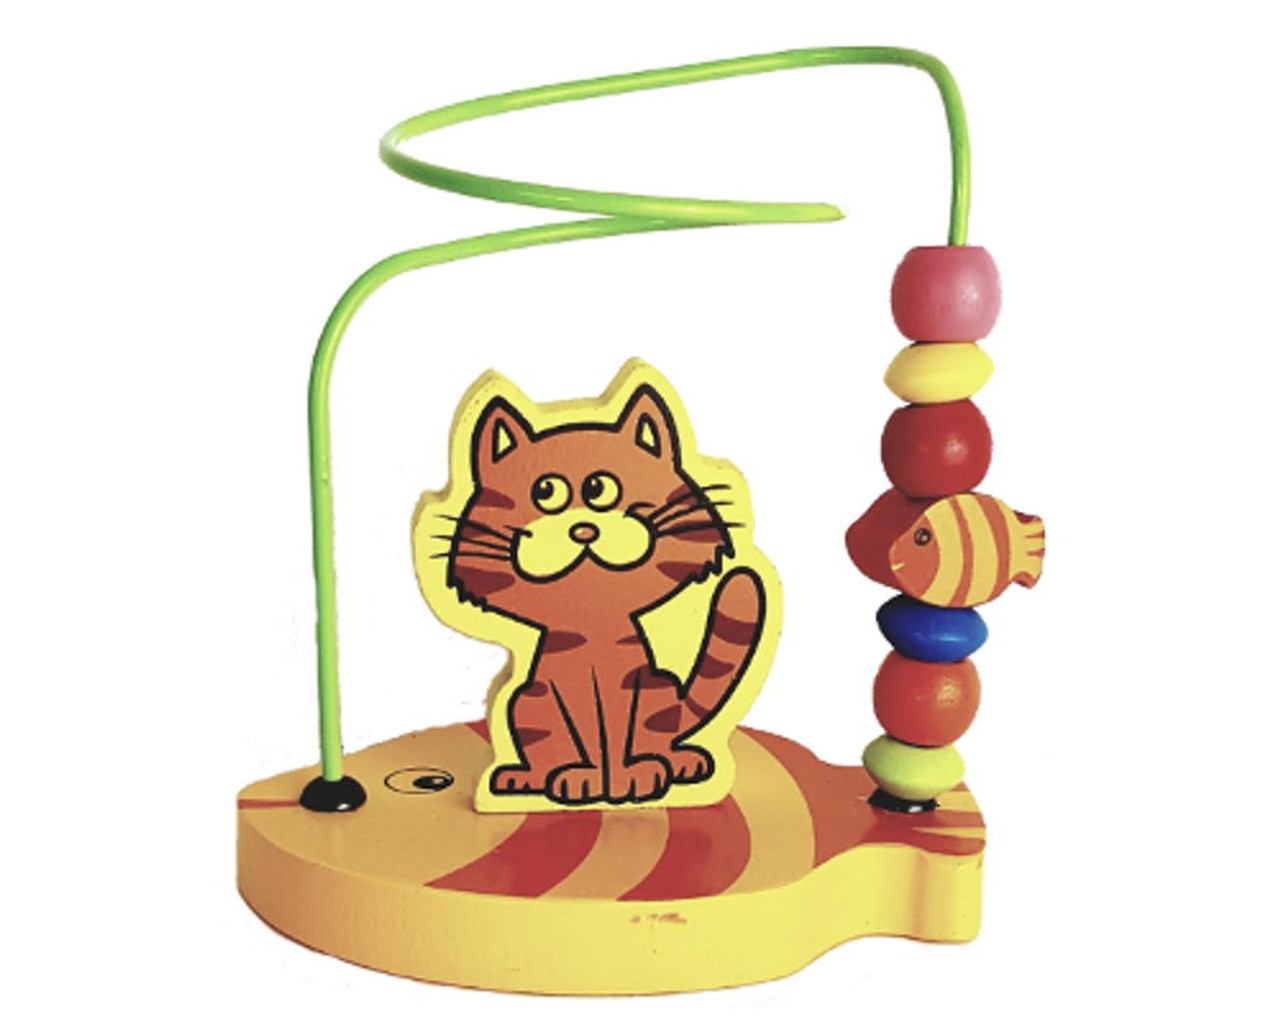 Lucky Tree- Mini Bead Maze at Baby Barn Discounts The Mini Bead Maze by Lucky Tree is the perfect toy for little ones just learning hand eye coordination and problem solving skills. Slide the beads from one side of the animal to the other.